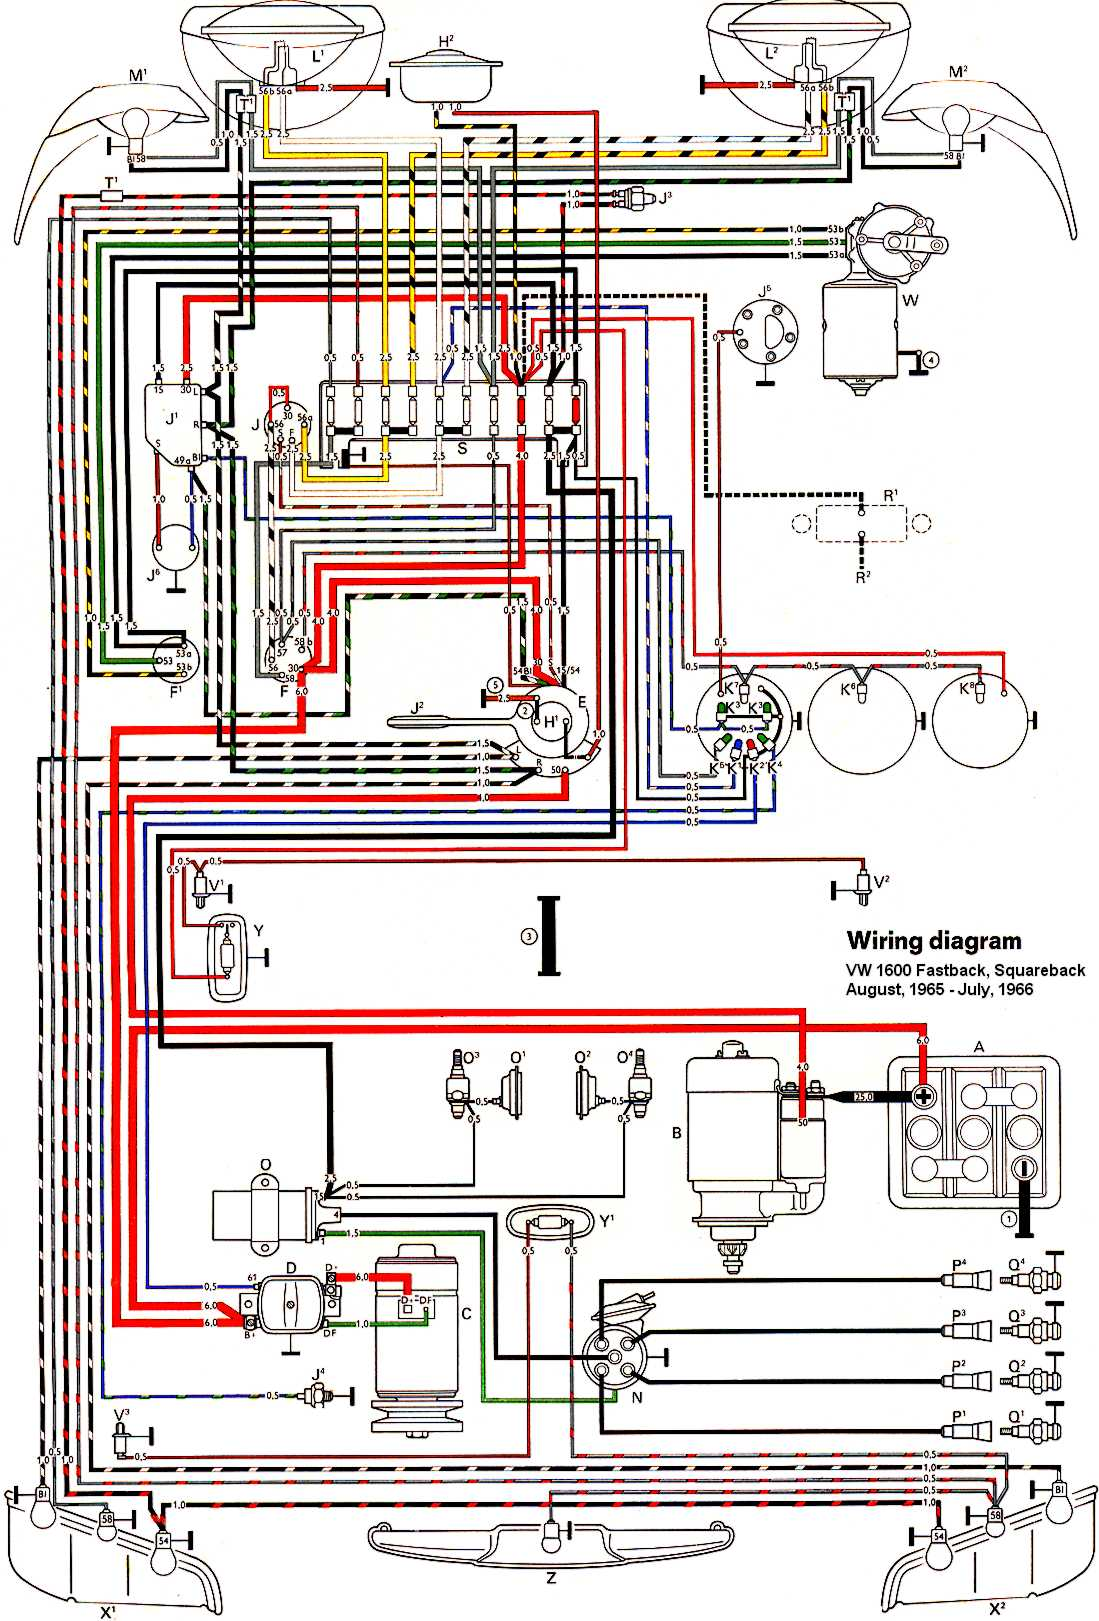 type3_1600_66 vw thing wiring diagram 1974 beetle heater diagram \u2022 wiring 1971 vw bus wiring diagram at crackthecode.co